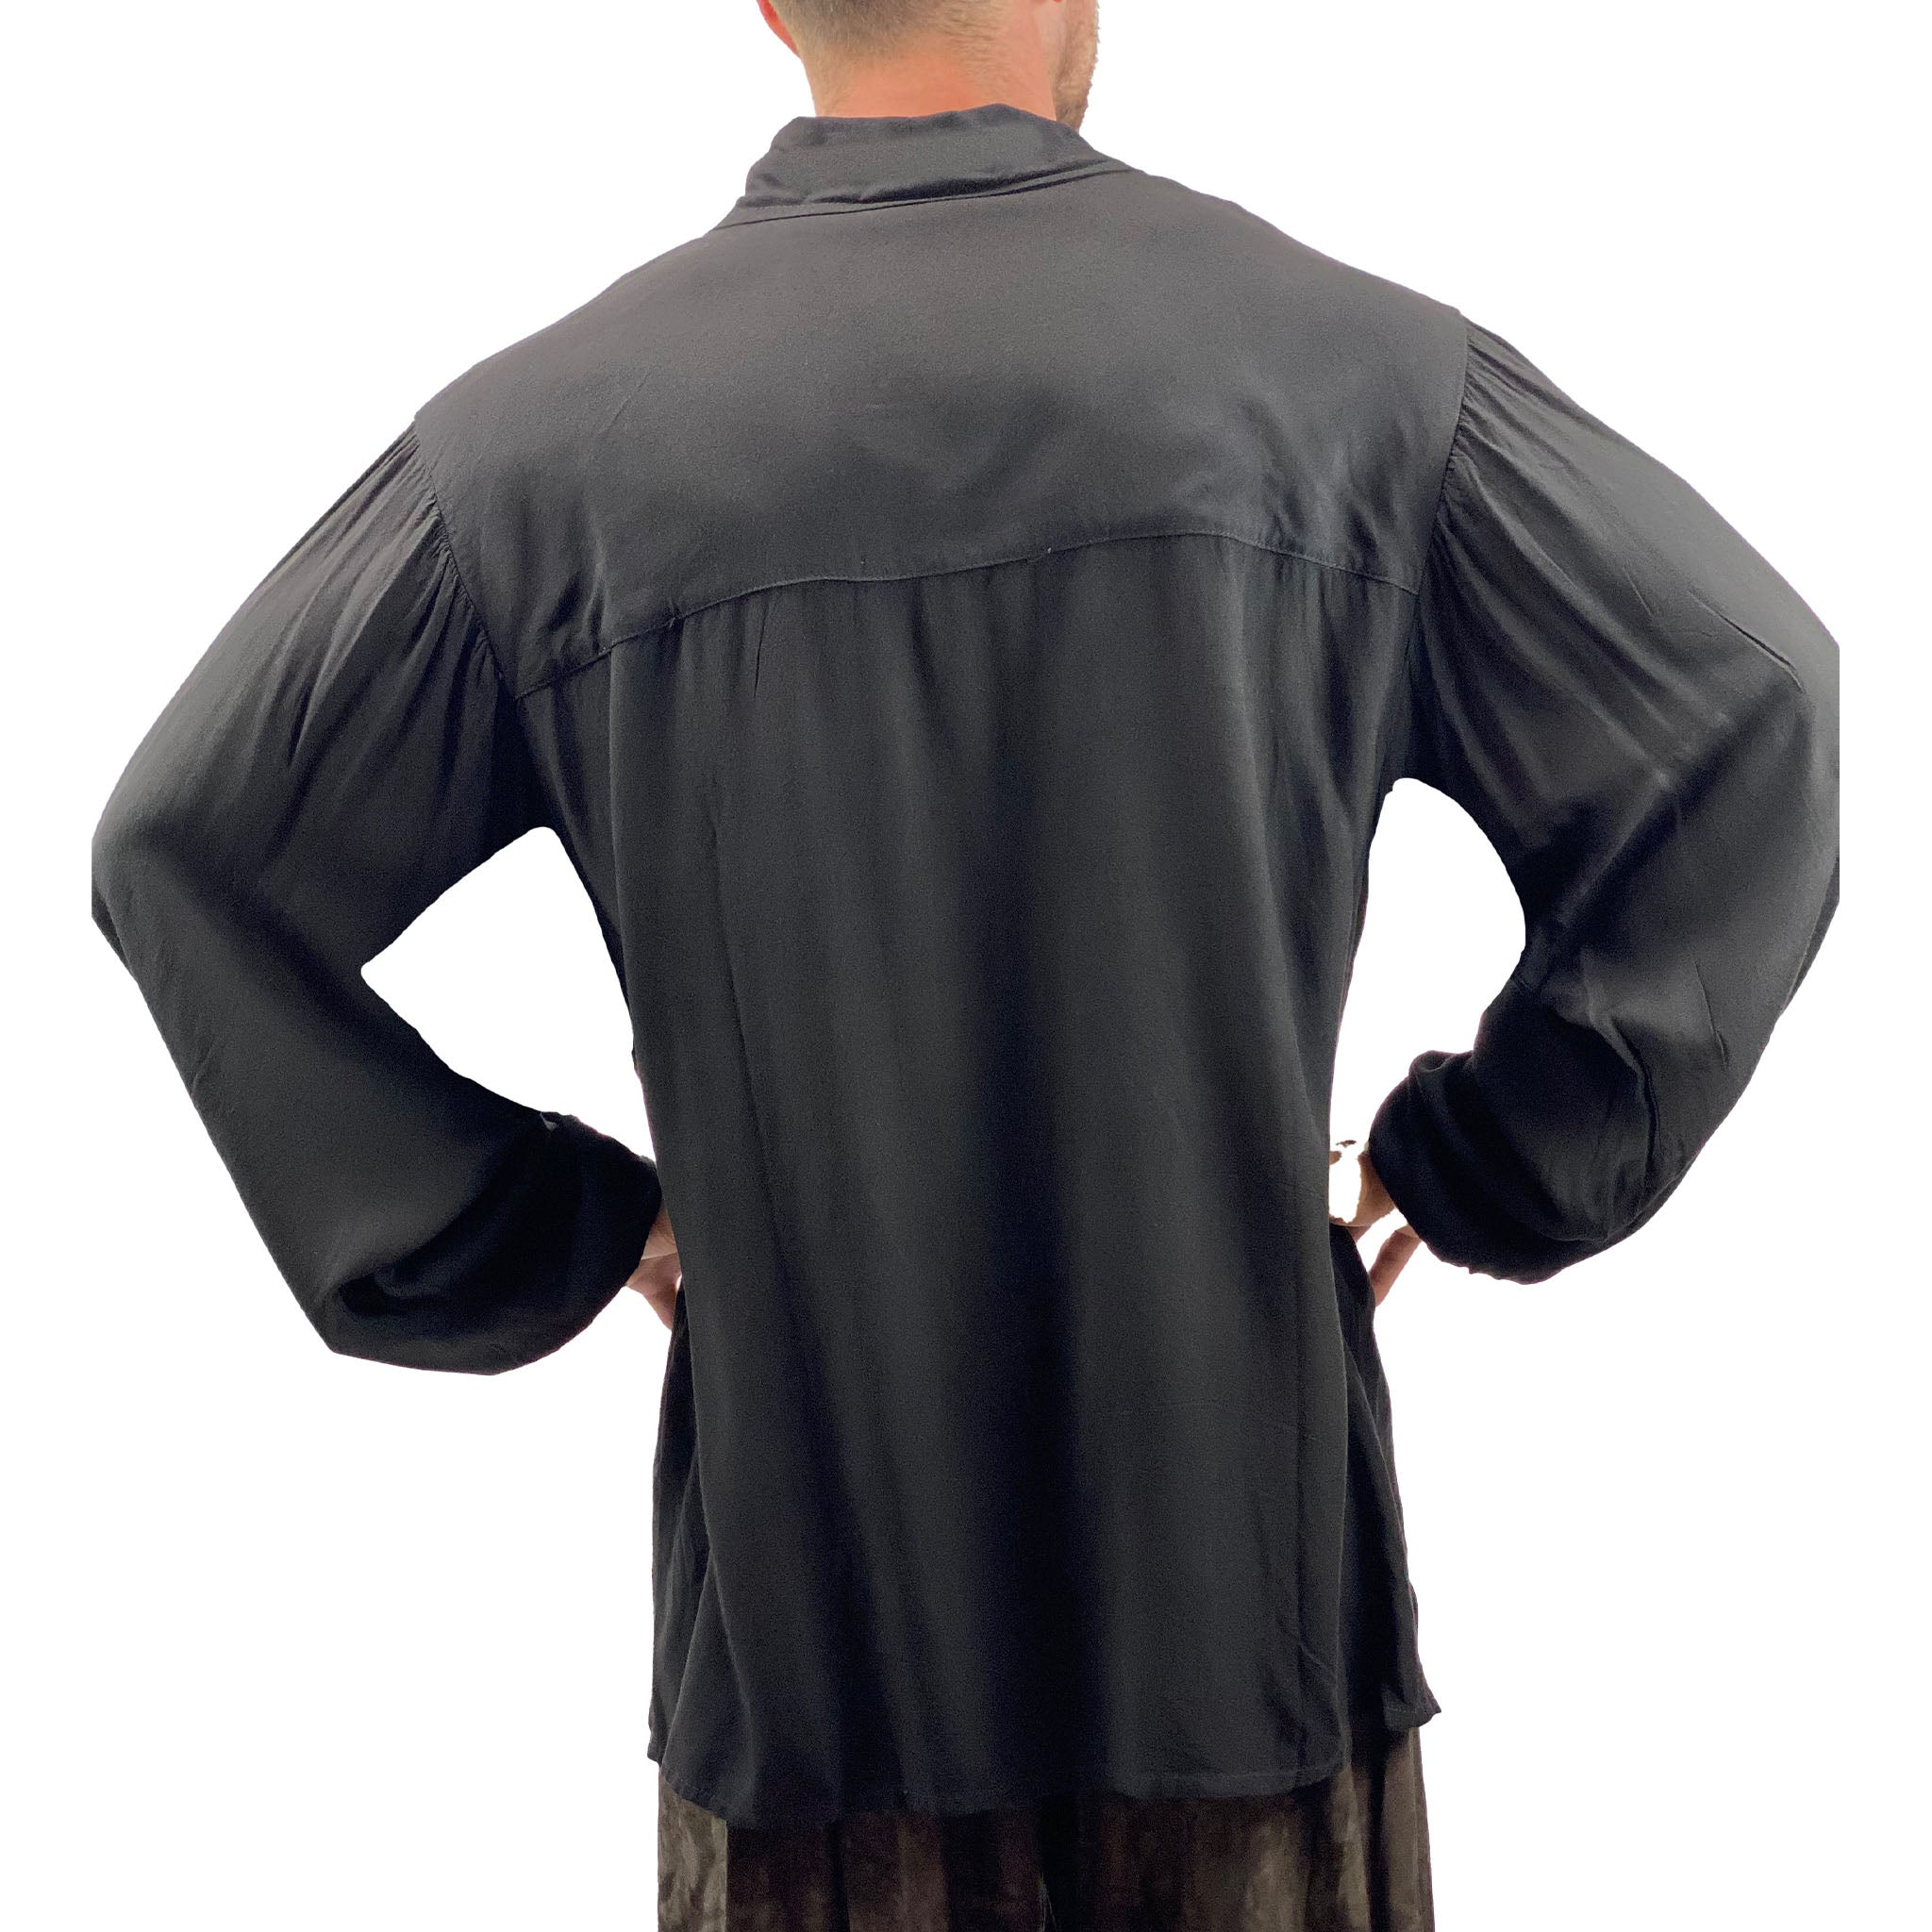 Mens Renaissance Shirt mens pirate shirt back view